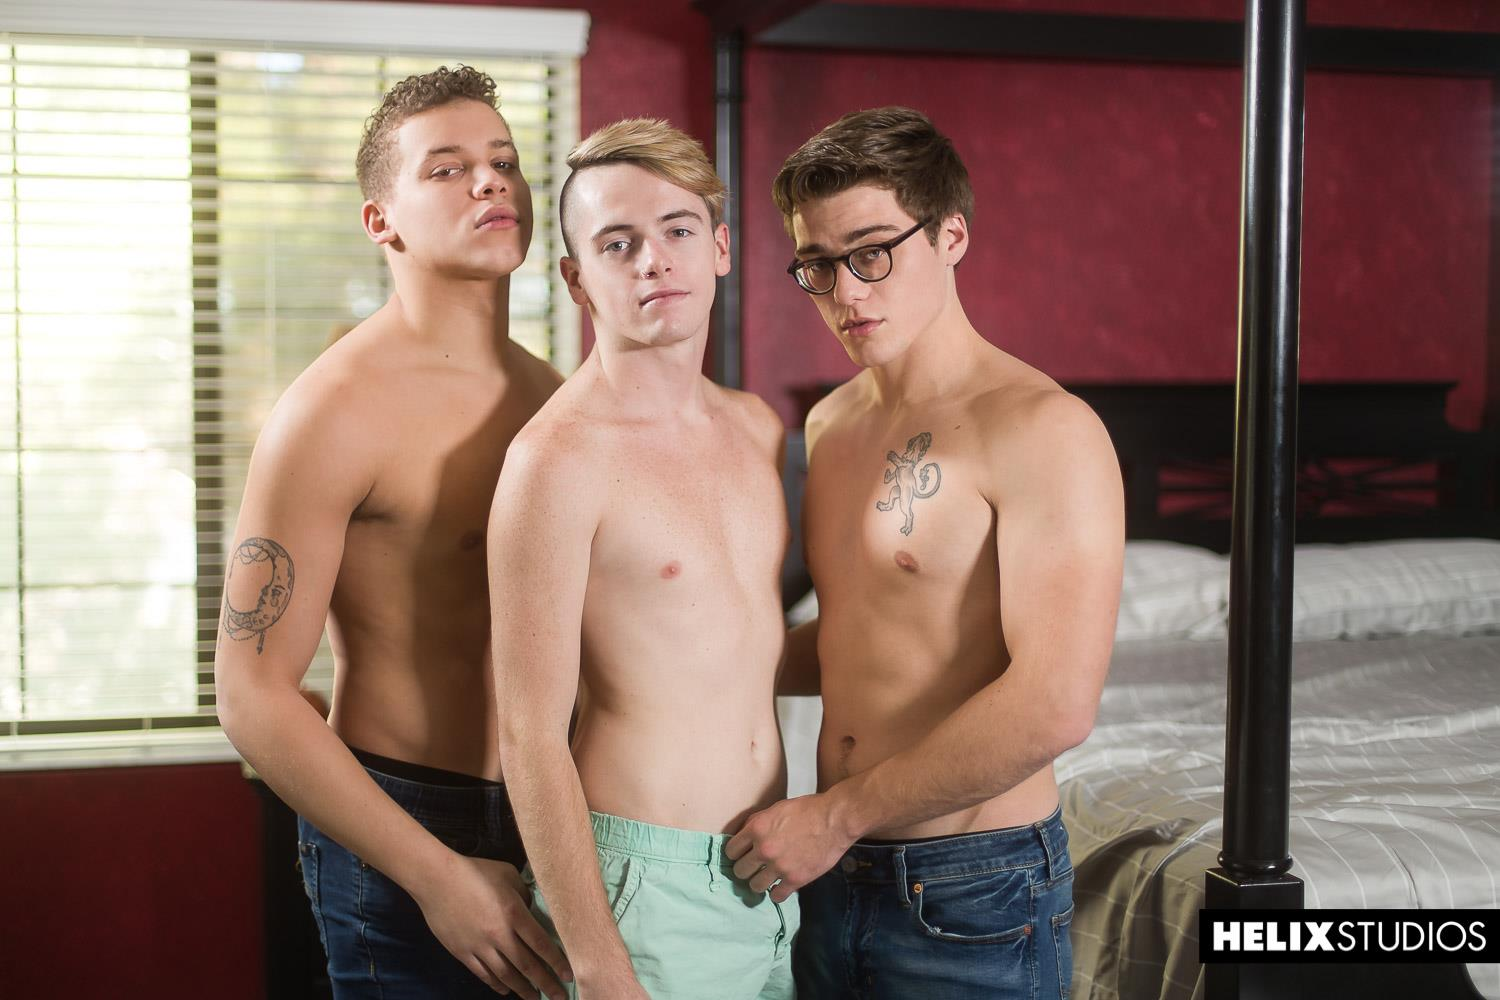 Helix-Studios-Blake-Mitchell-and-Corbin-Colby-and-Clay-Turner-Bareback-Twinks-04 Helix Bareback Spitroasted Threeway With Blake Mitchell, Corbin Colby, Clay Turner